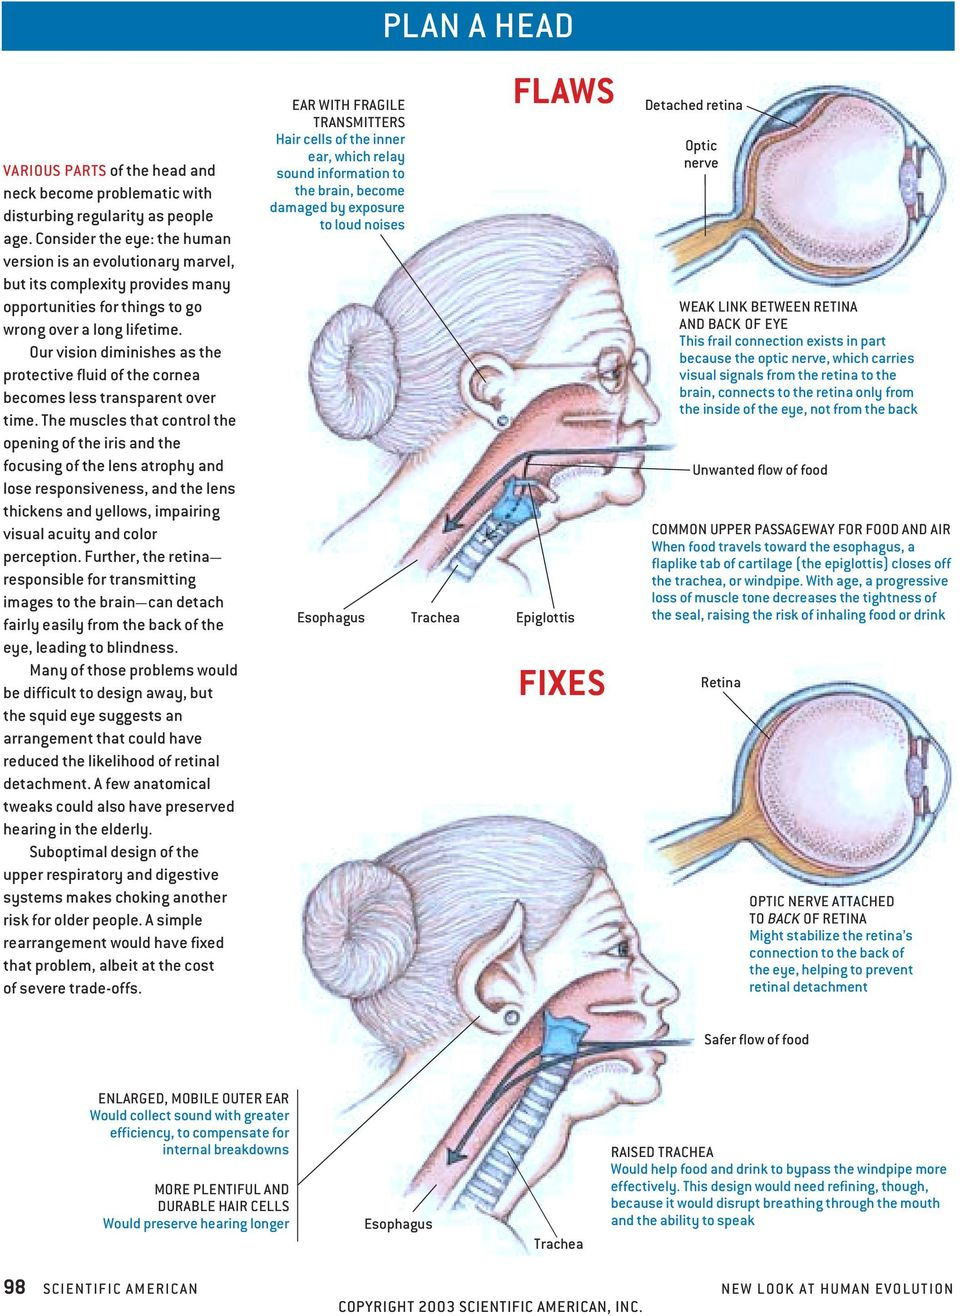 Our vision diminishes as the protective fluid of the cornea becomes less transparent over time.